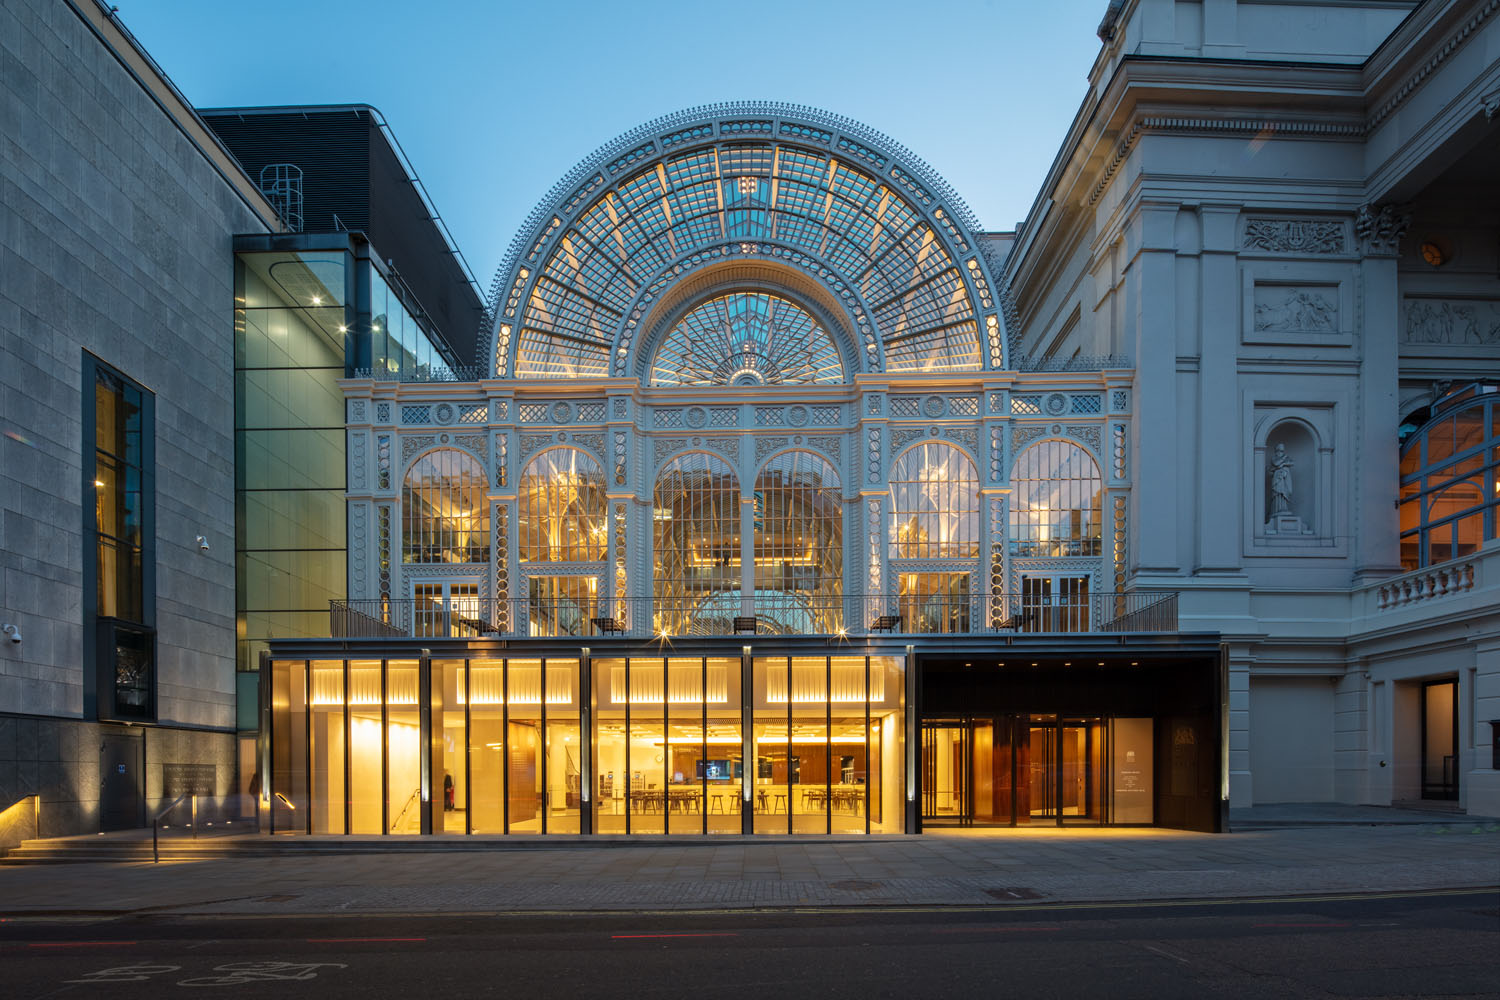 Royal Opera House, new exterior ©2018 ROH. Photograph by Luke Hayes